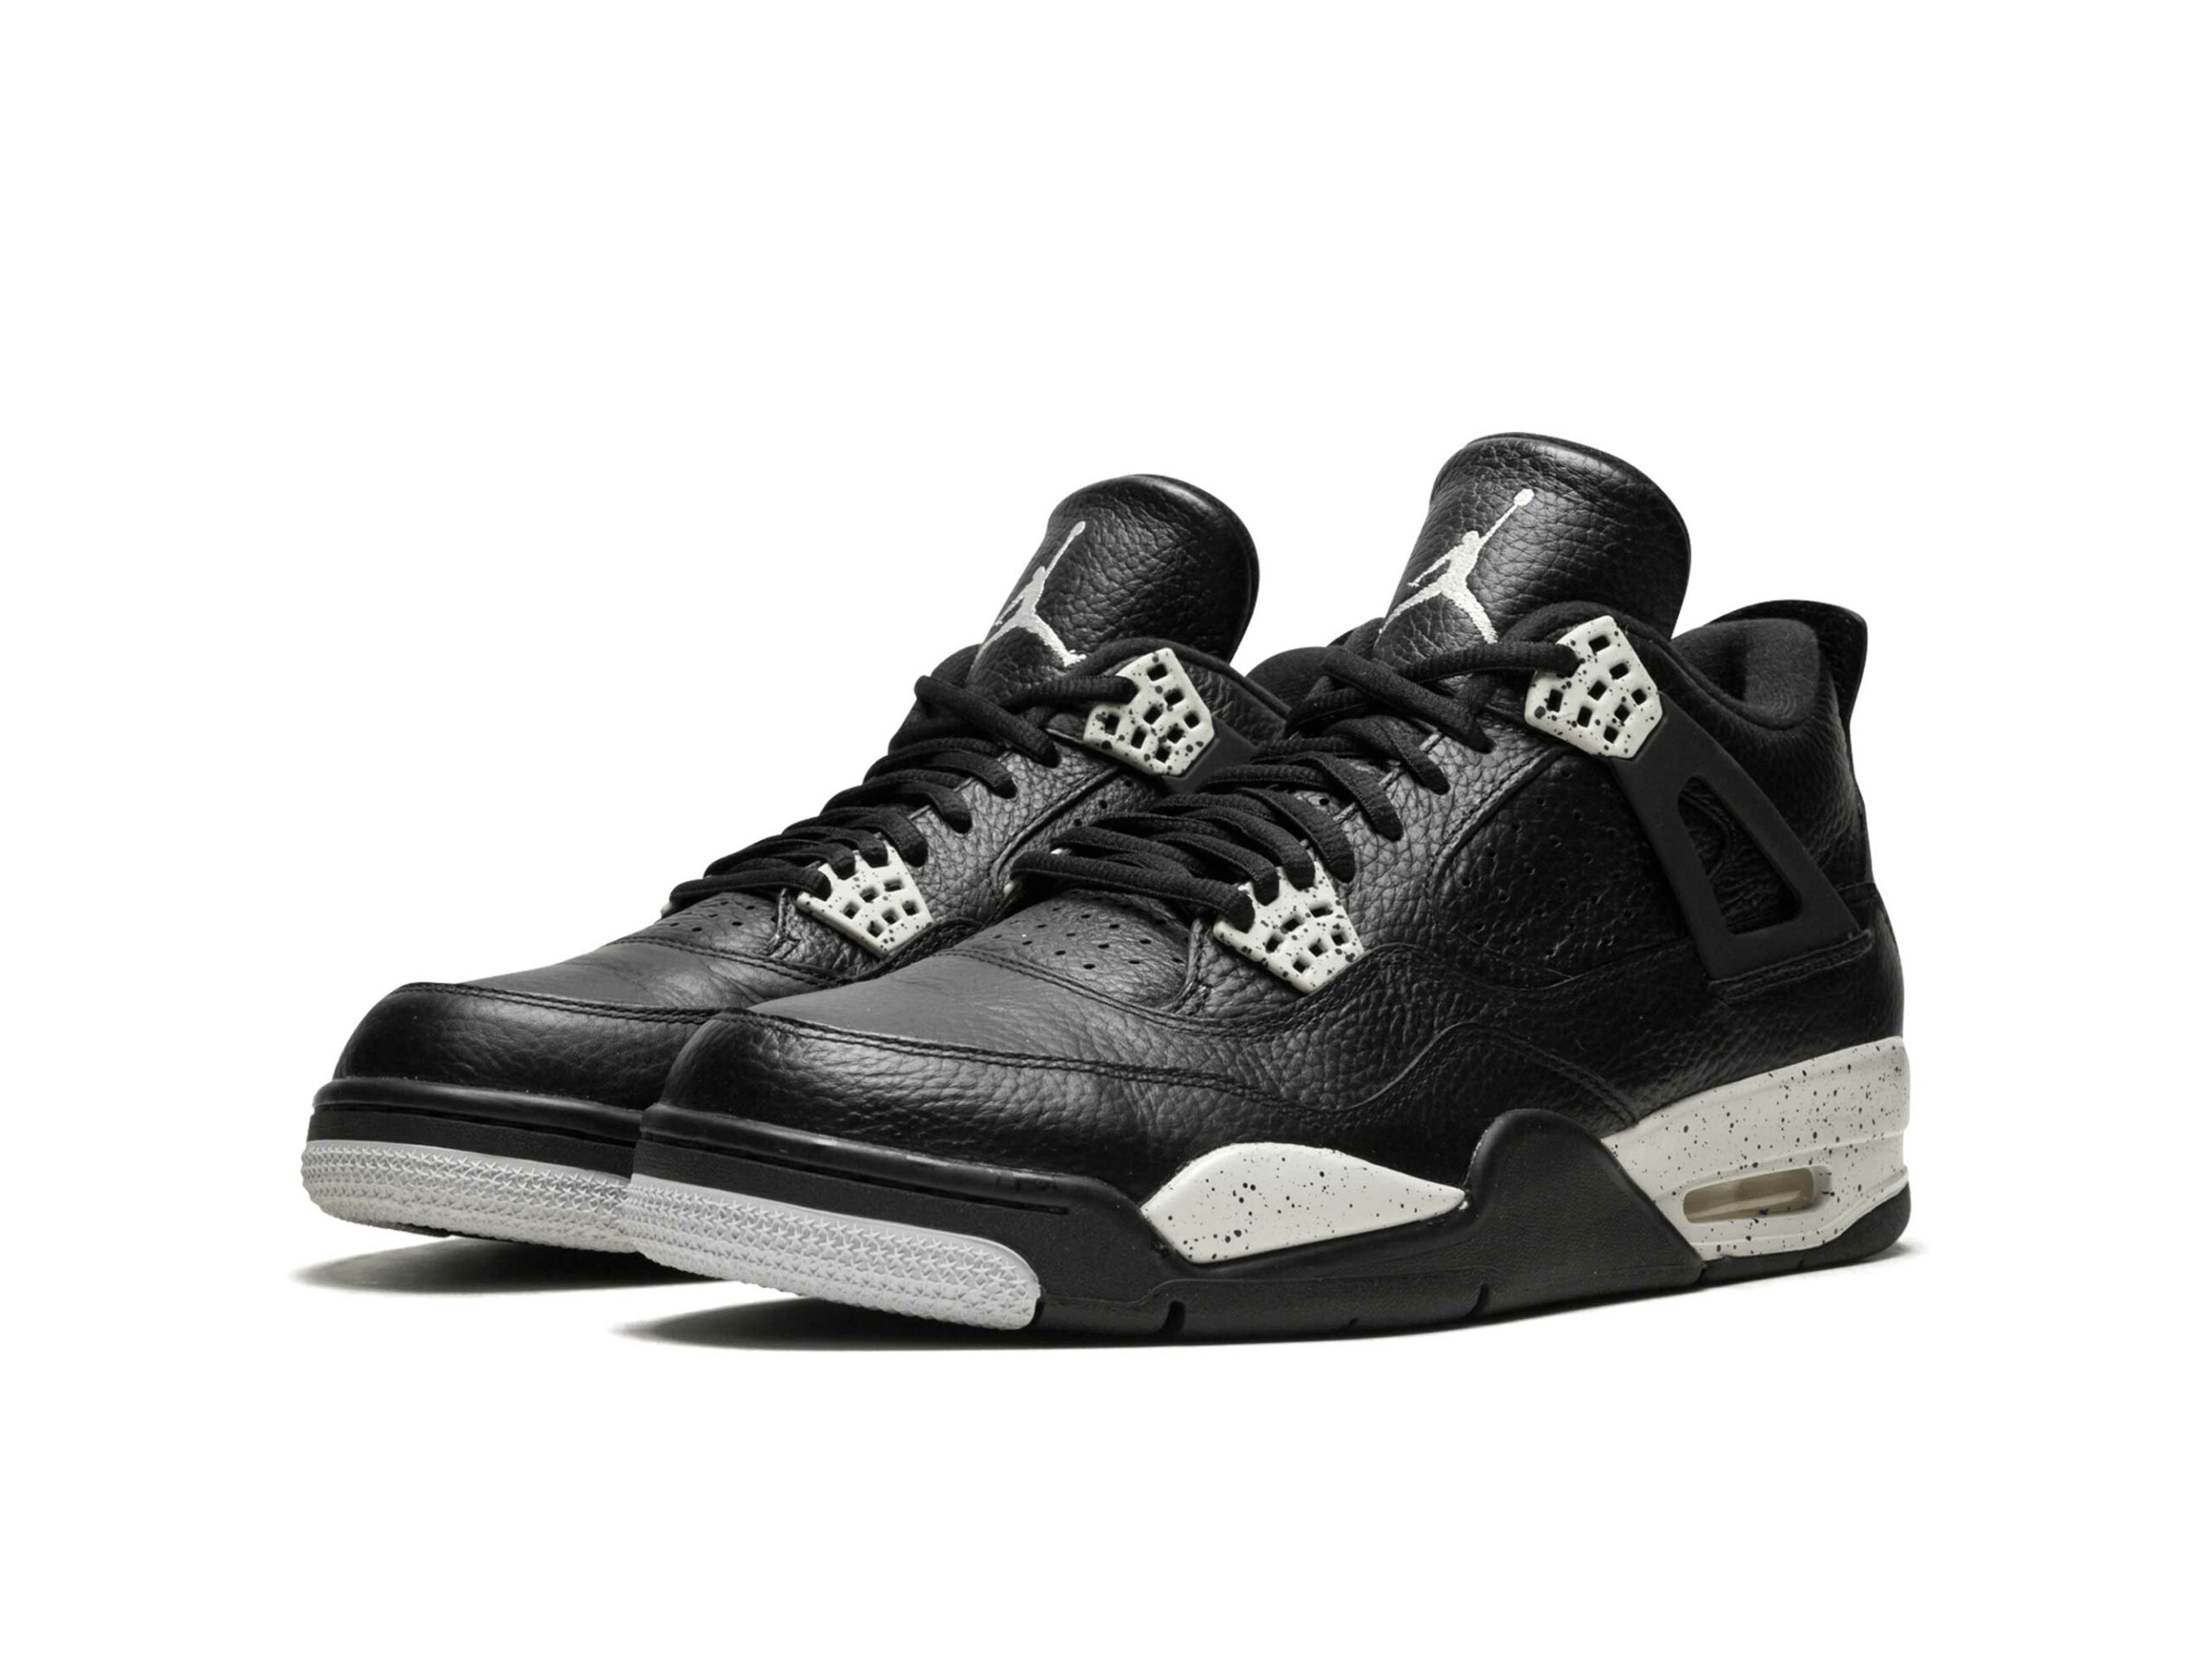 nike air jordan 4 retro ls orео 314254_003 купить